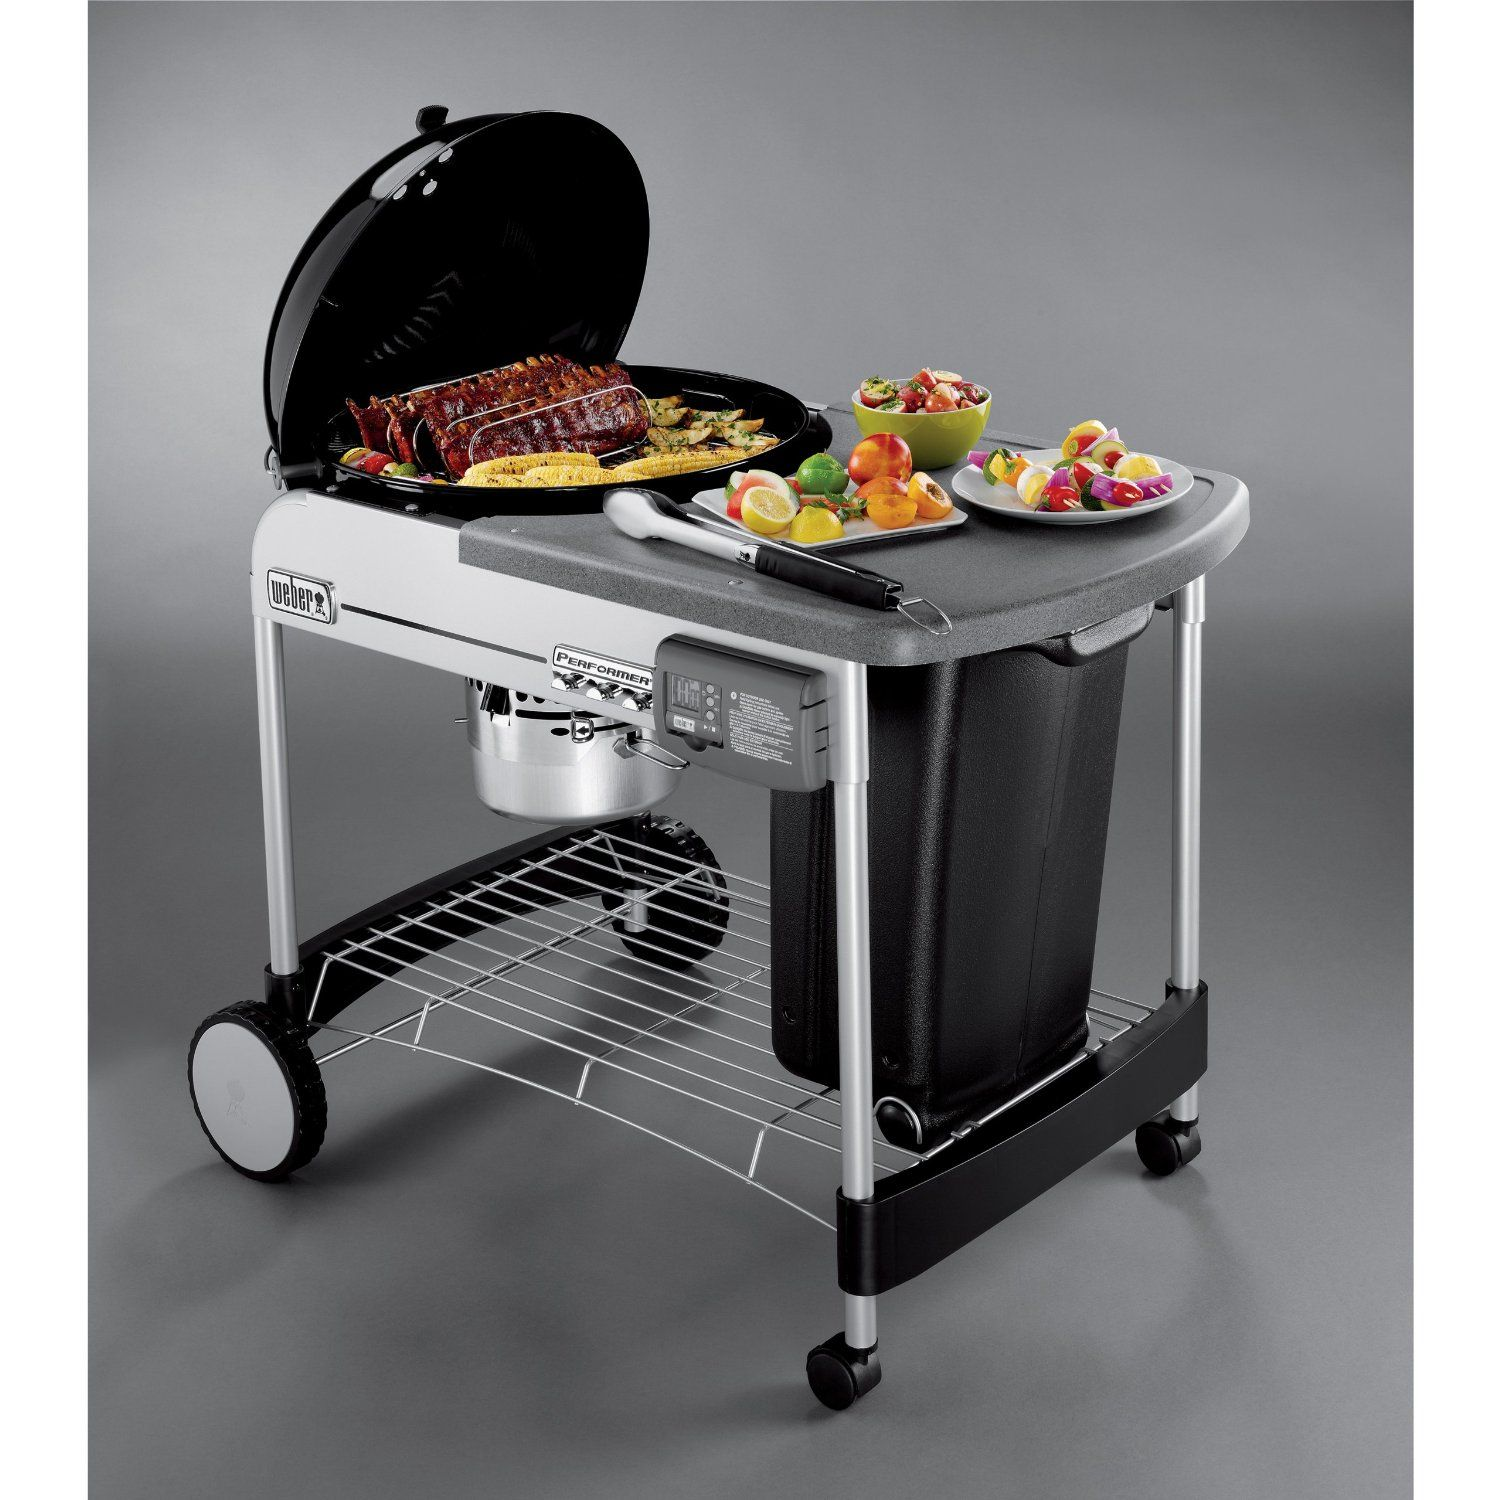 Weber Performer Platinum Charcoal Grill Review This Is So Cool A Charcoal Grill That Is Self Lighti Charcoal Grill Weber Charcoal Grill Gas And Charcoal Grill